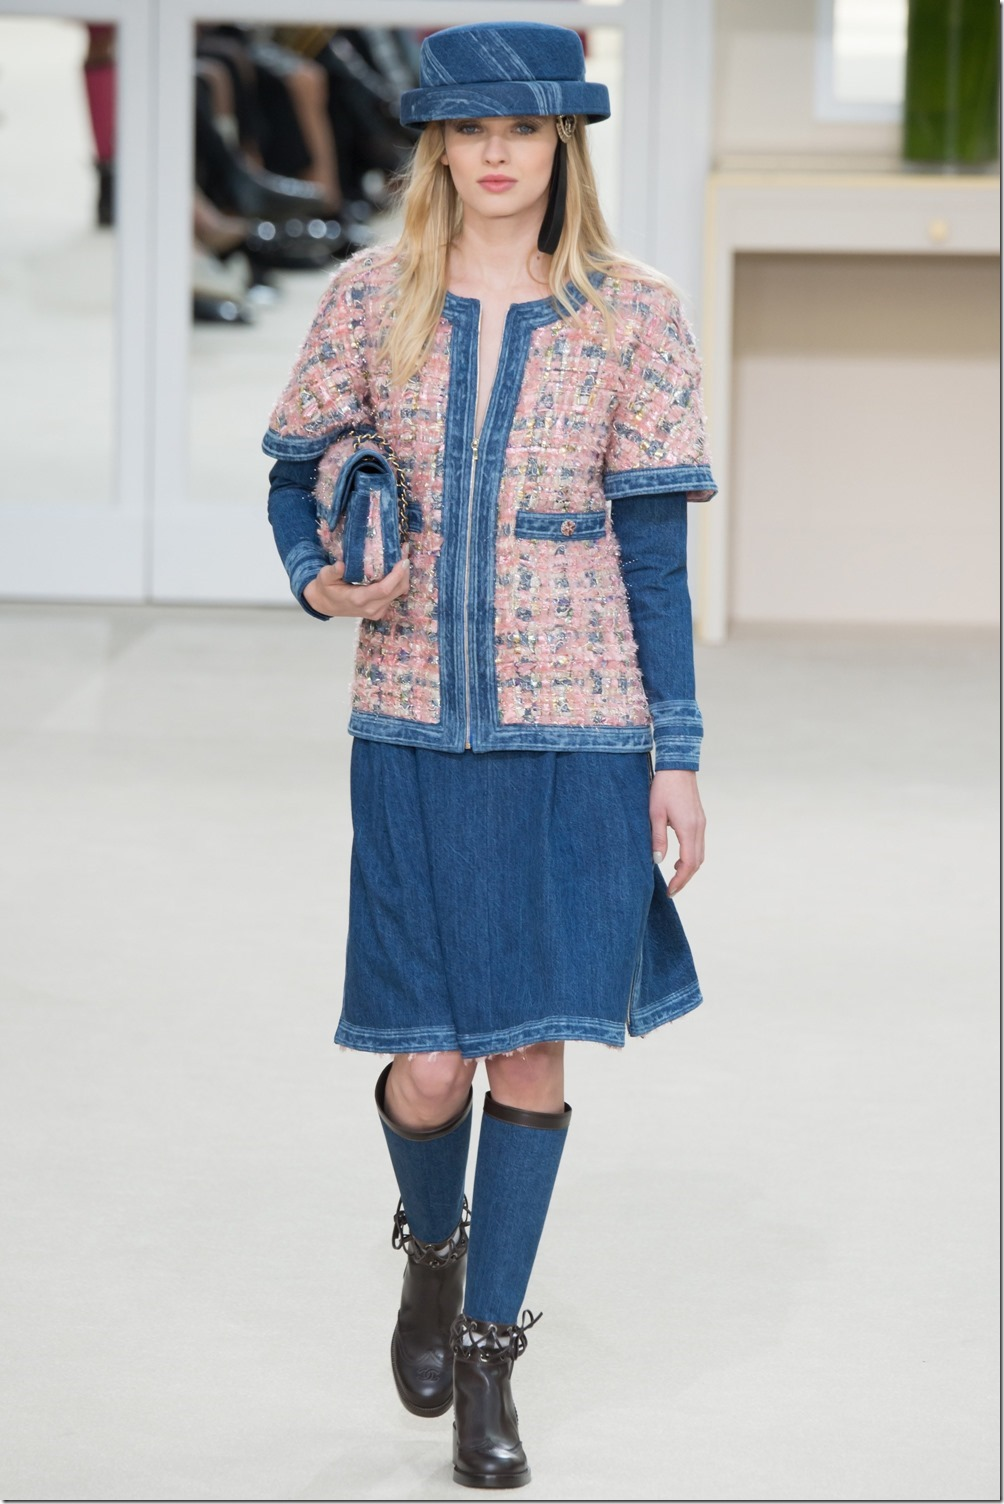 Chanel Fall Winter`16 - Ready to Wear : Denimsandjeans.com